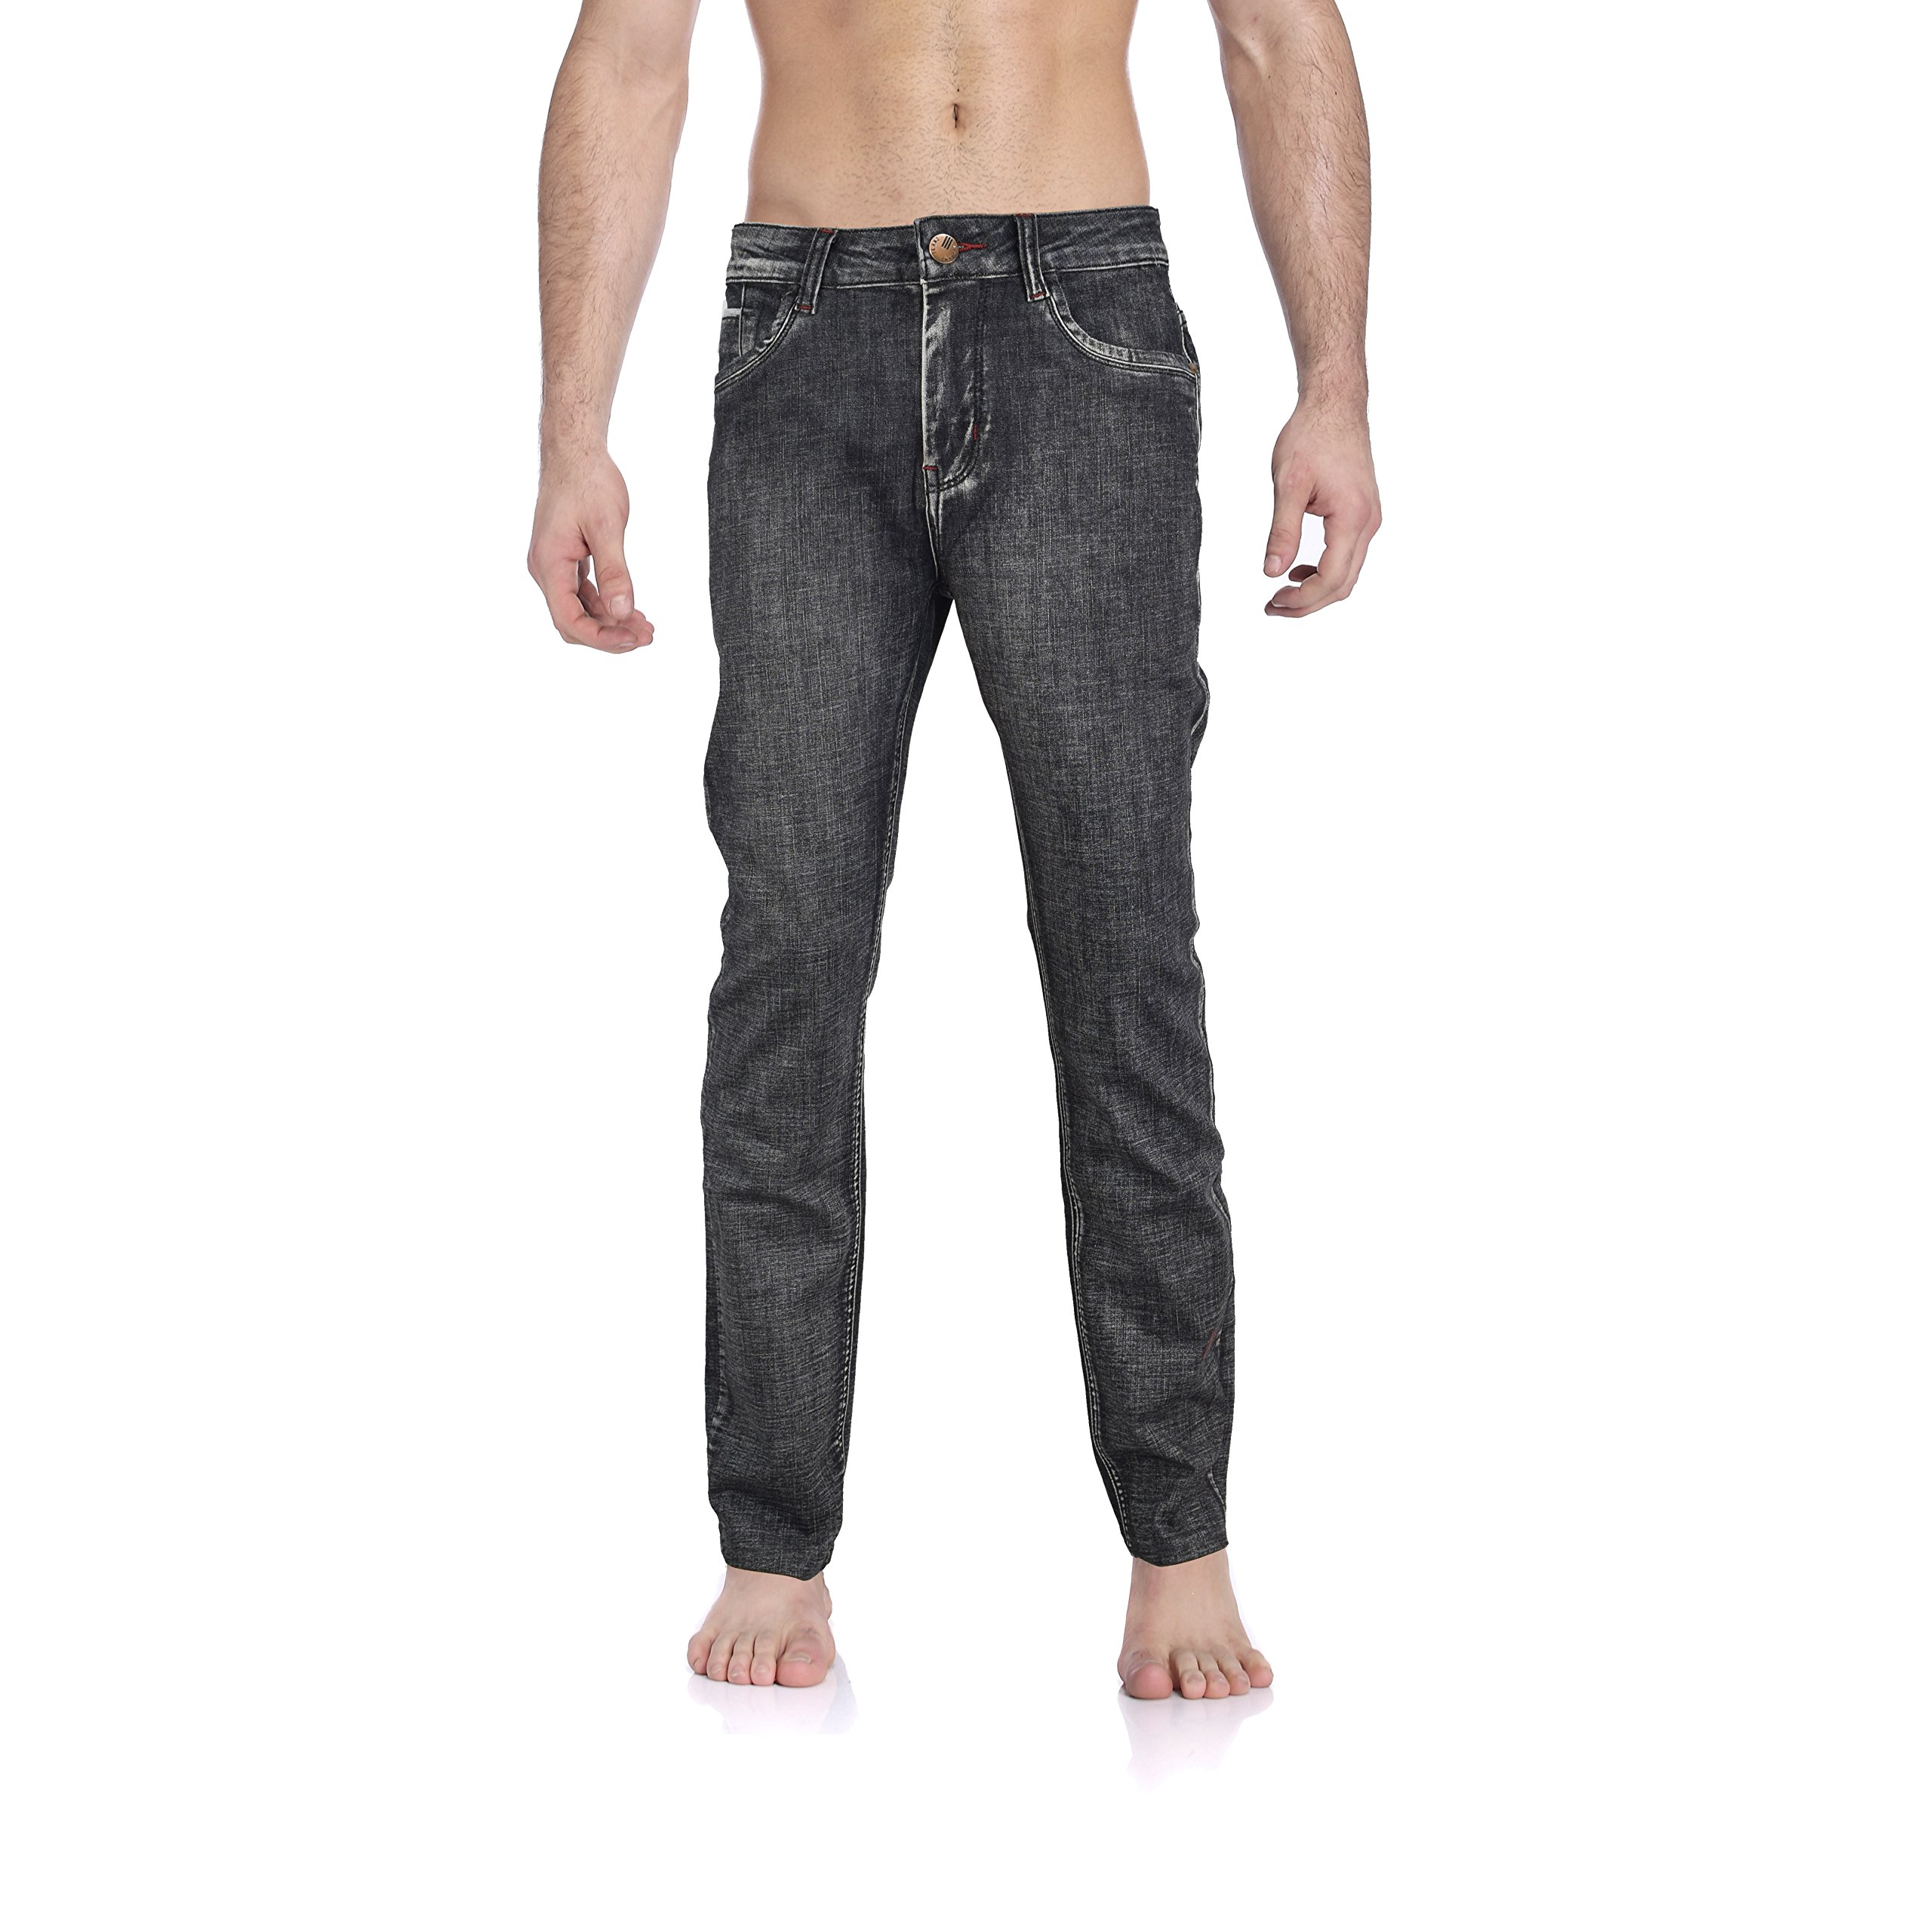 Tusalmo Jeans For Men From Professional Jeans Factory, 20 Production Experience. (31, Black-6689#)